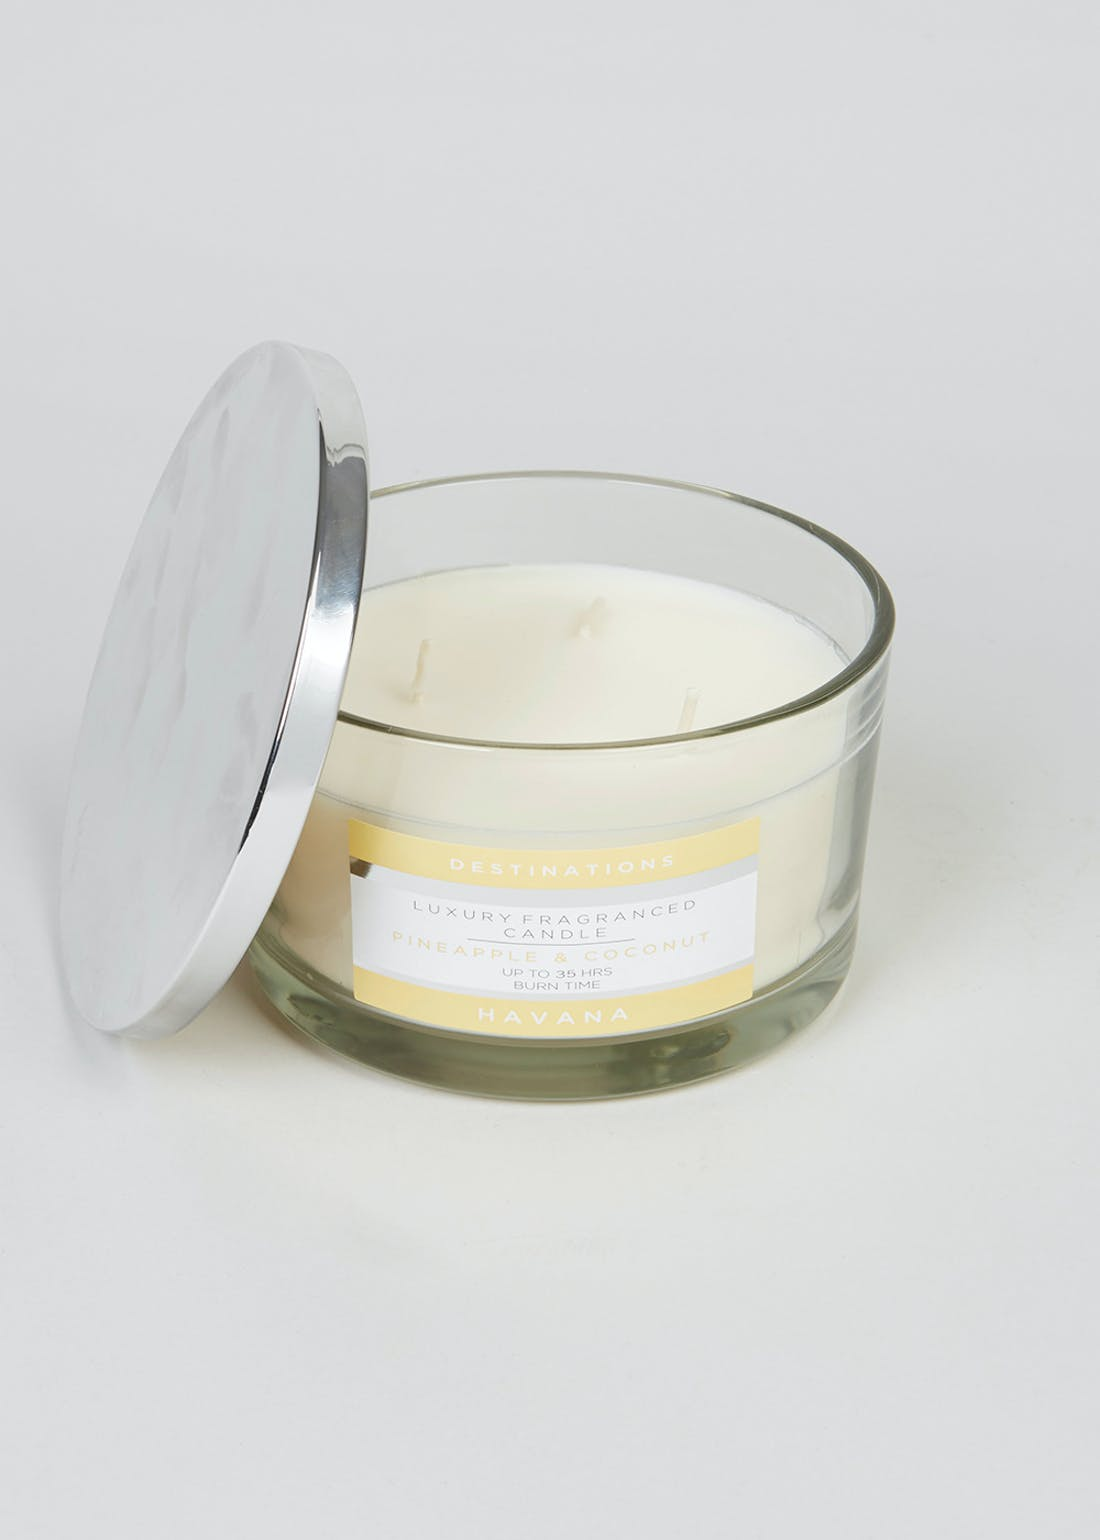 Pineapple & Coconut Havana Destinations 3 Wick Candle (13cm x 8cm)